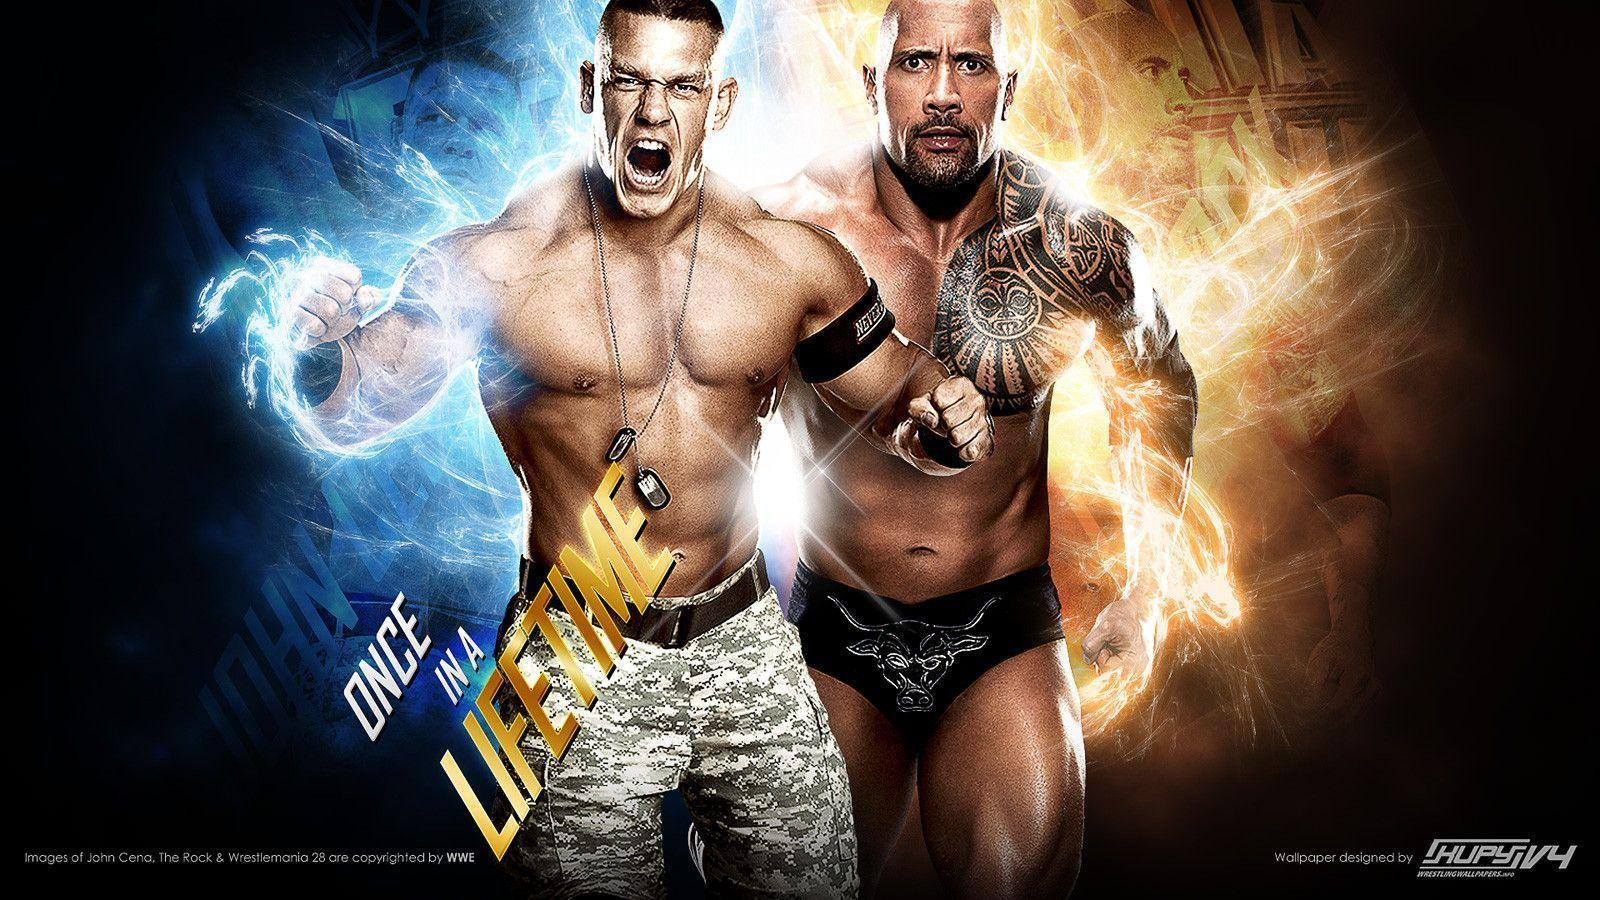 John Cena Wwe Champion Wallpapers Wallpaper Cave